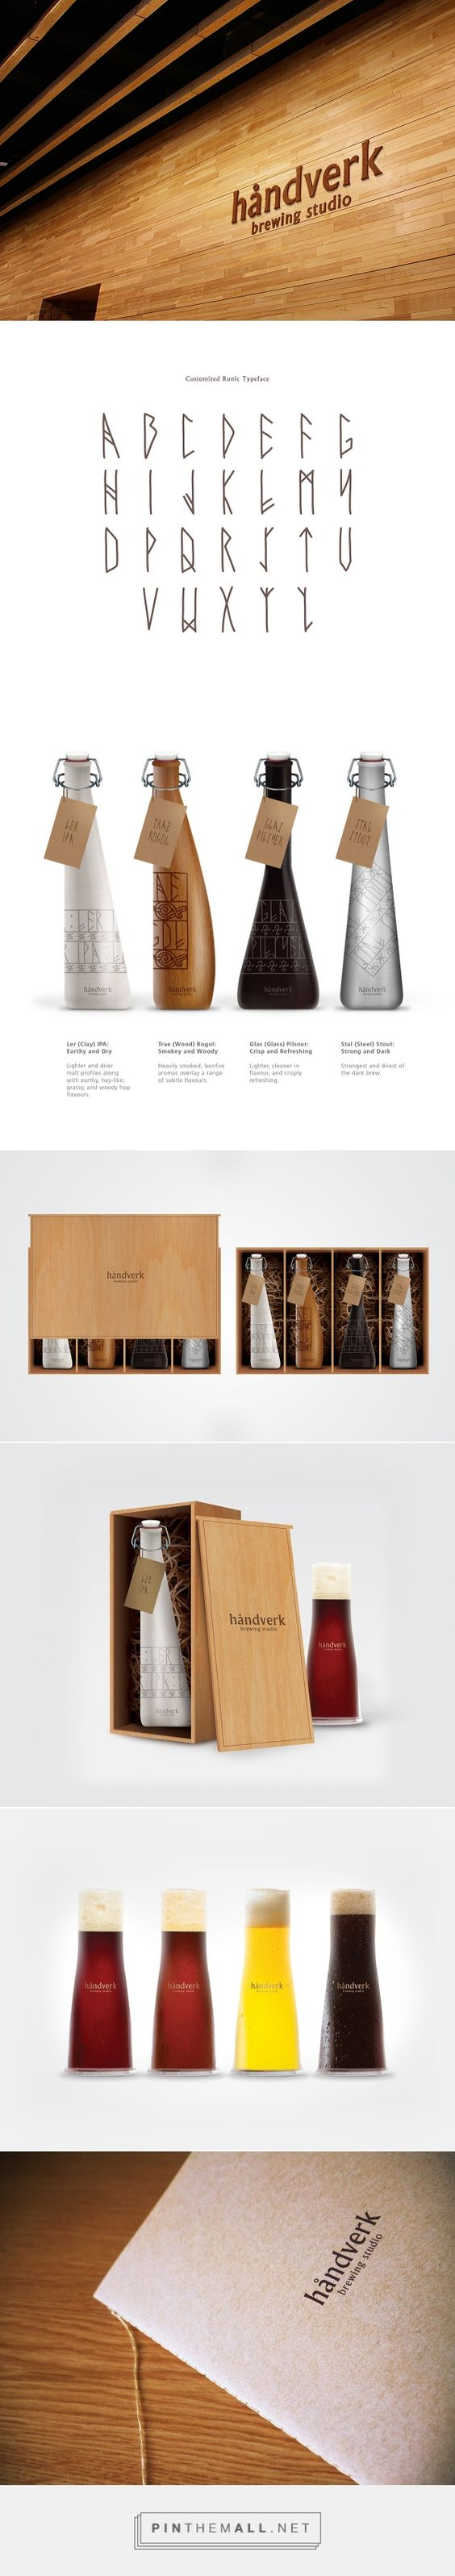 Håndverk Brewing Studio on Behance by ZiYu Ooi Penang Island, Malaysia curated by Packaging Diva PD. Read this story and look at this stunning bottle packaging.